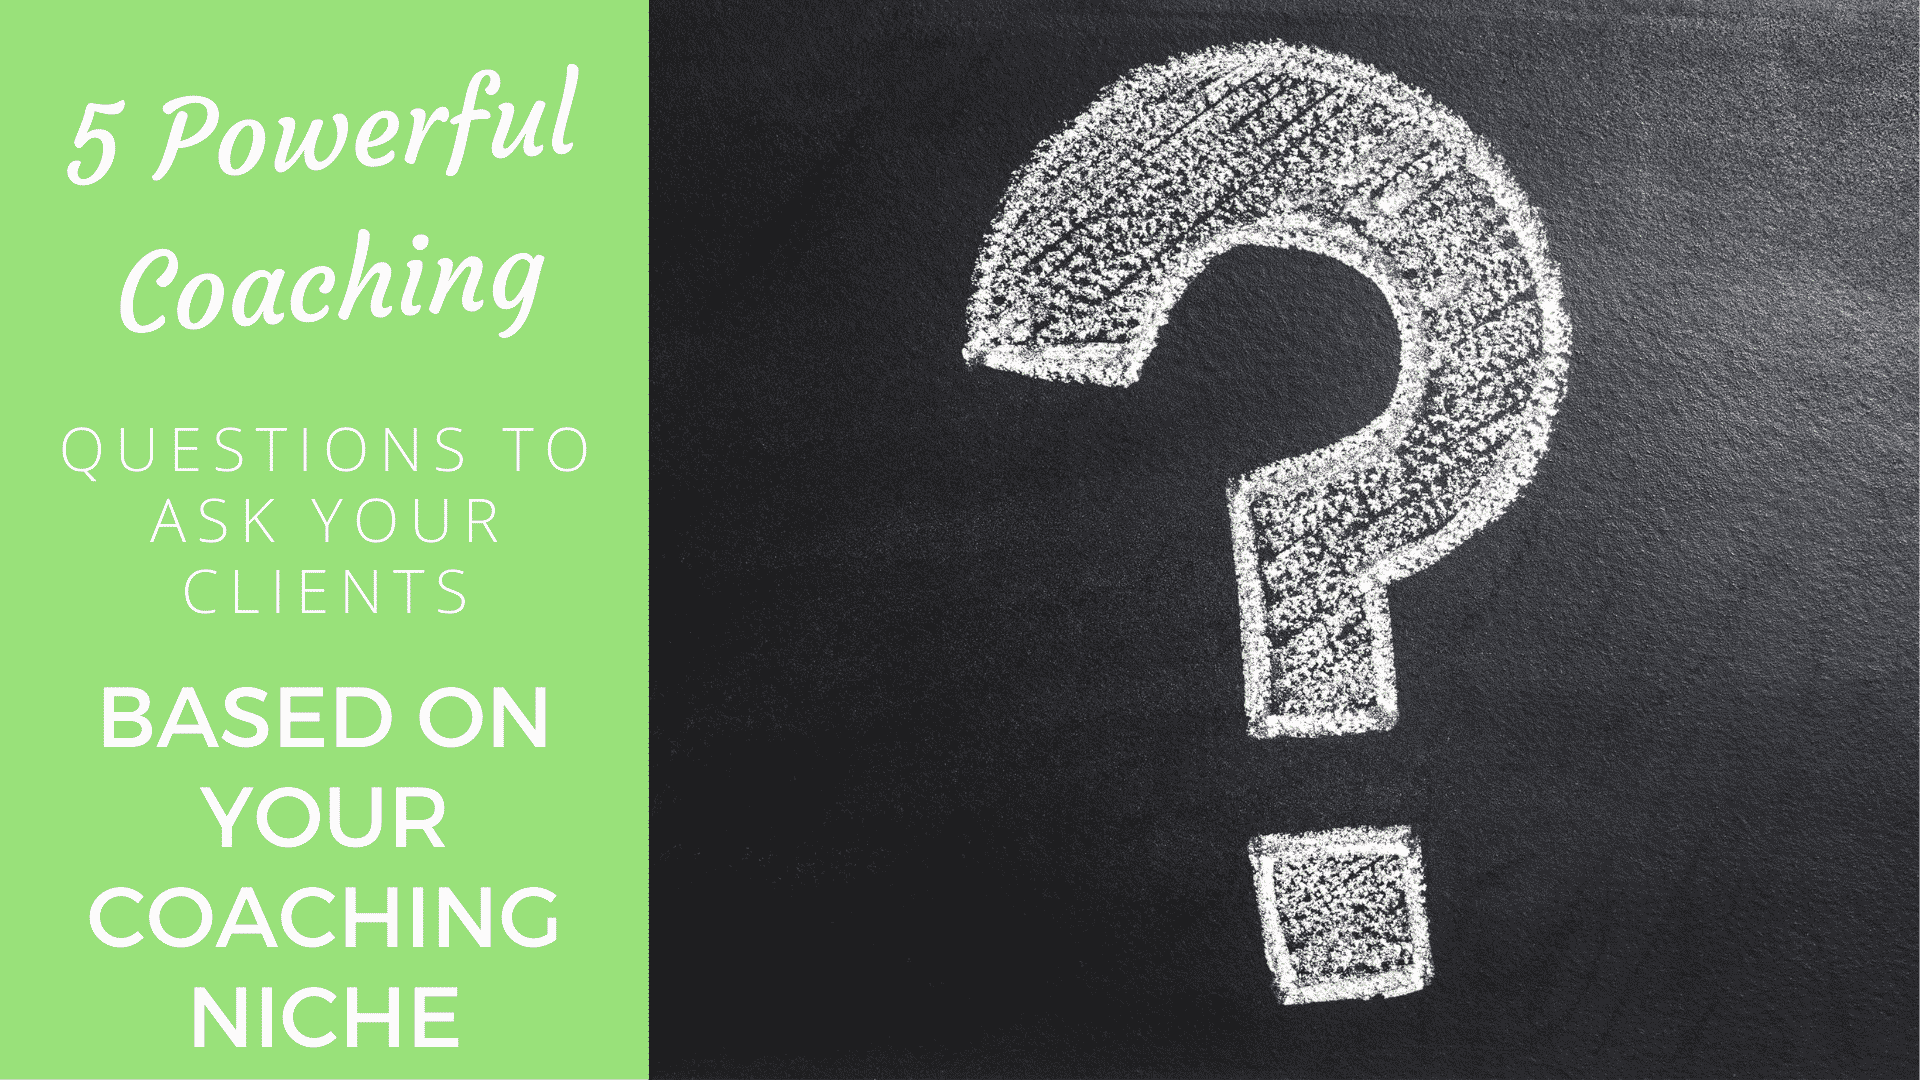 5 Powerful Coaching Questions to Ask Your Clients Based on Your Coaching Niche